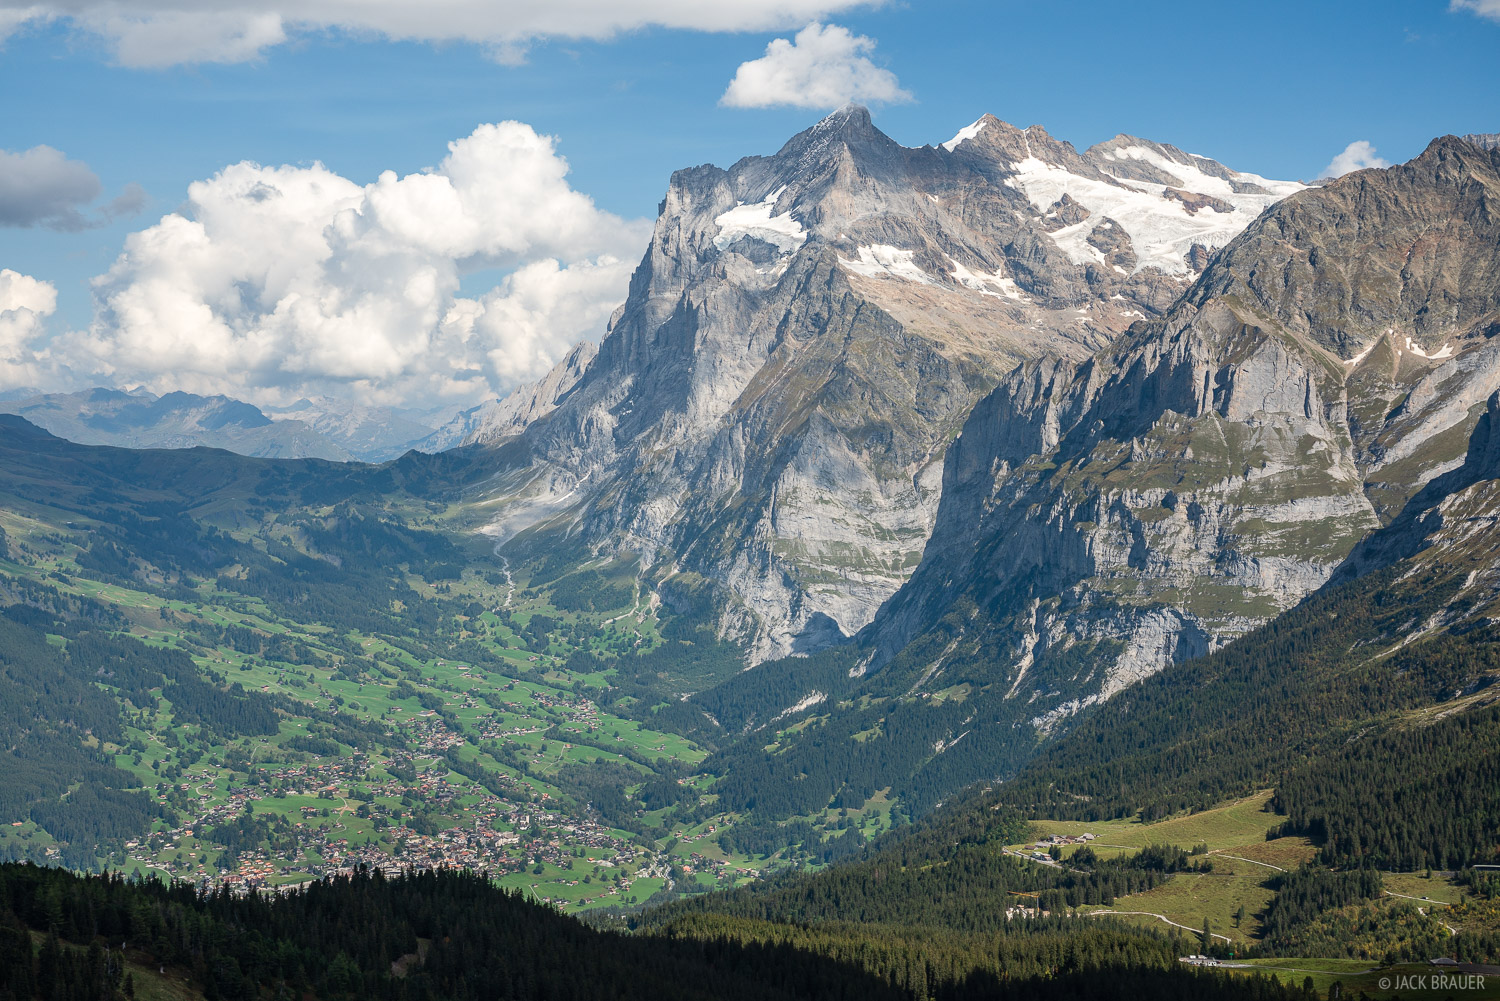 Bernese Alps, Grindelwald, Kleine Scheidegg, Switzerland, Wetterhorn, Bernese Oberland, photo